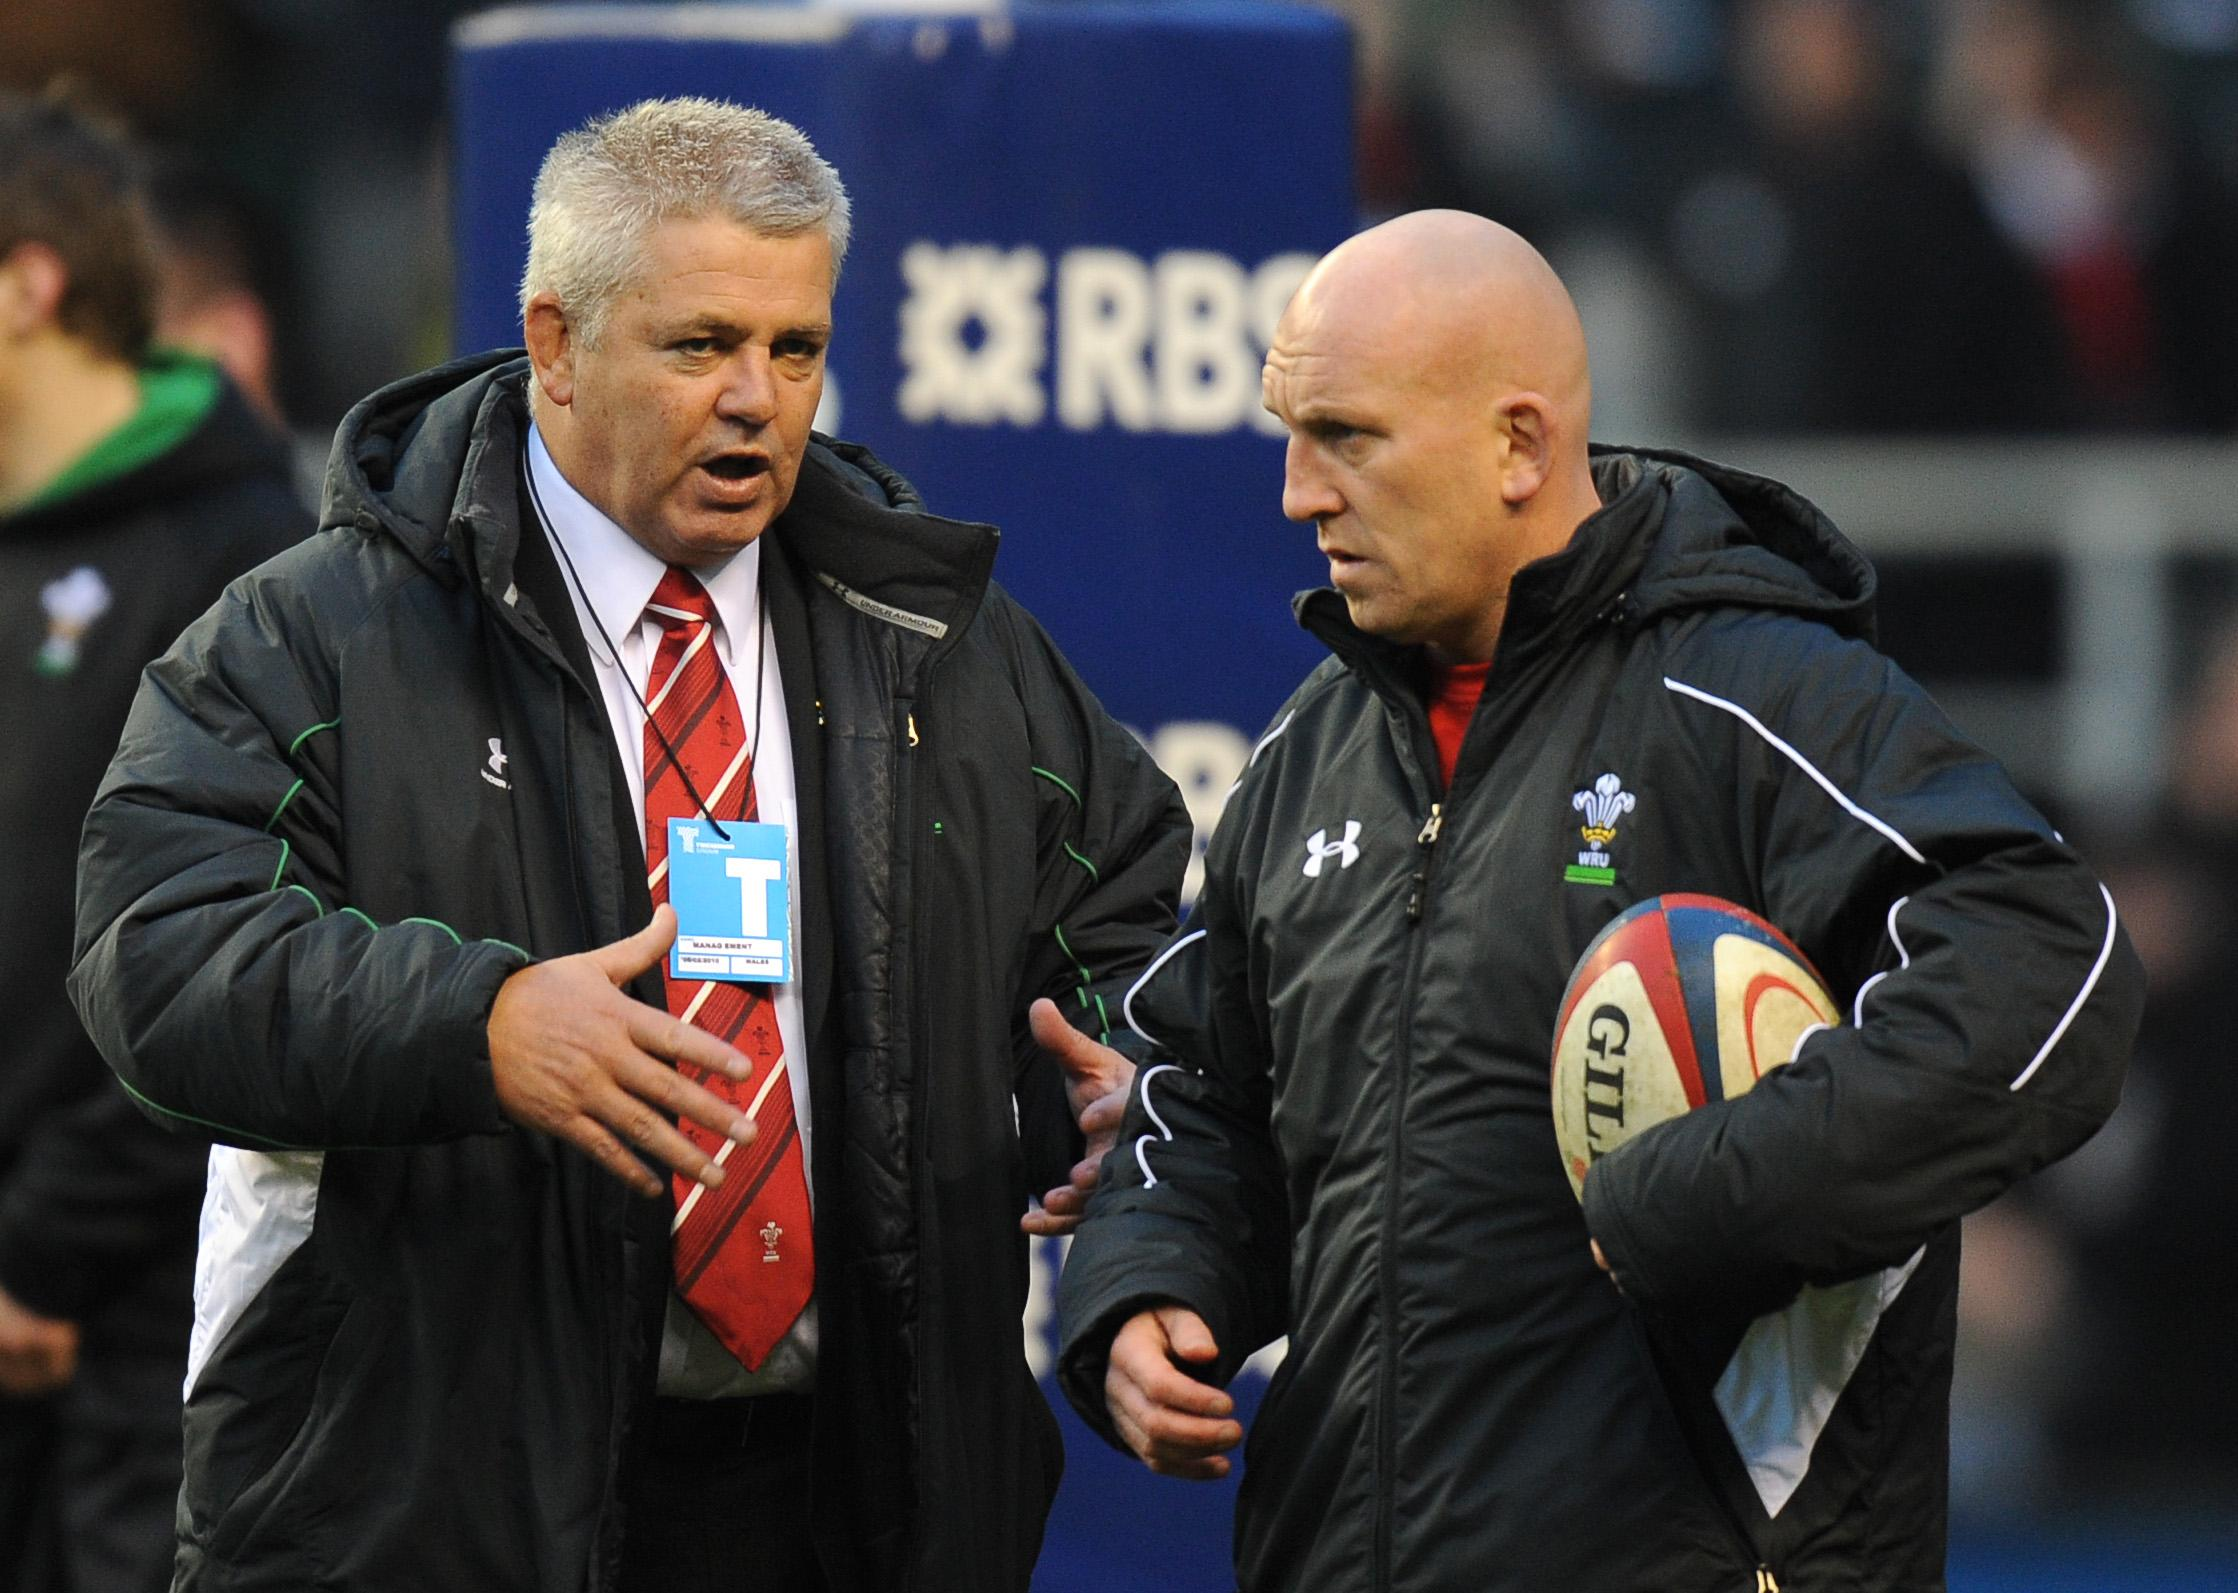 Gatland and Edwards have formed a successful bond as Wales coaches